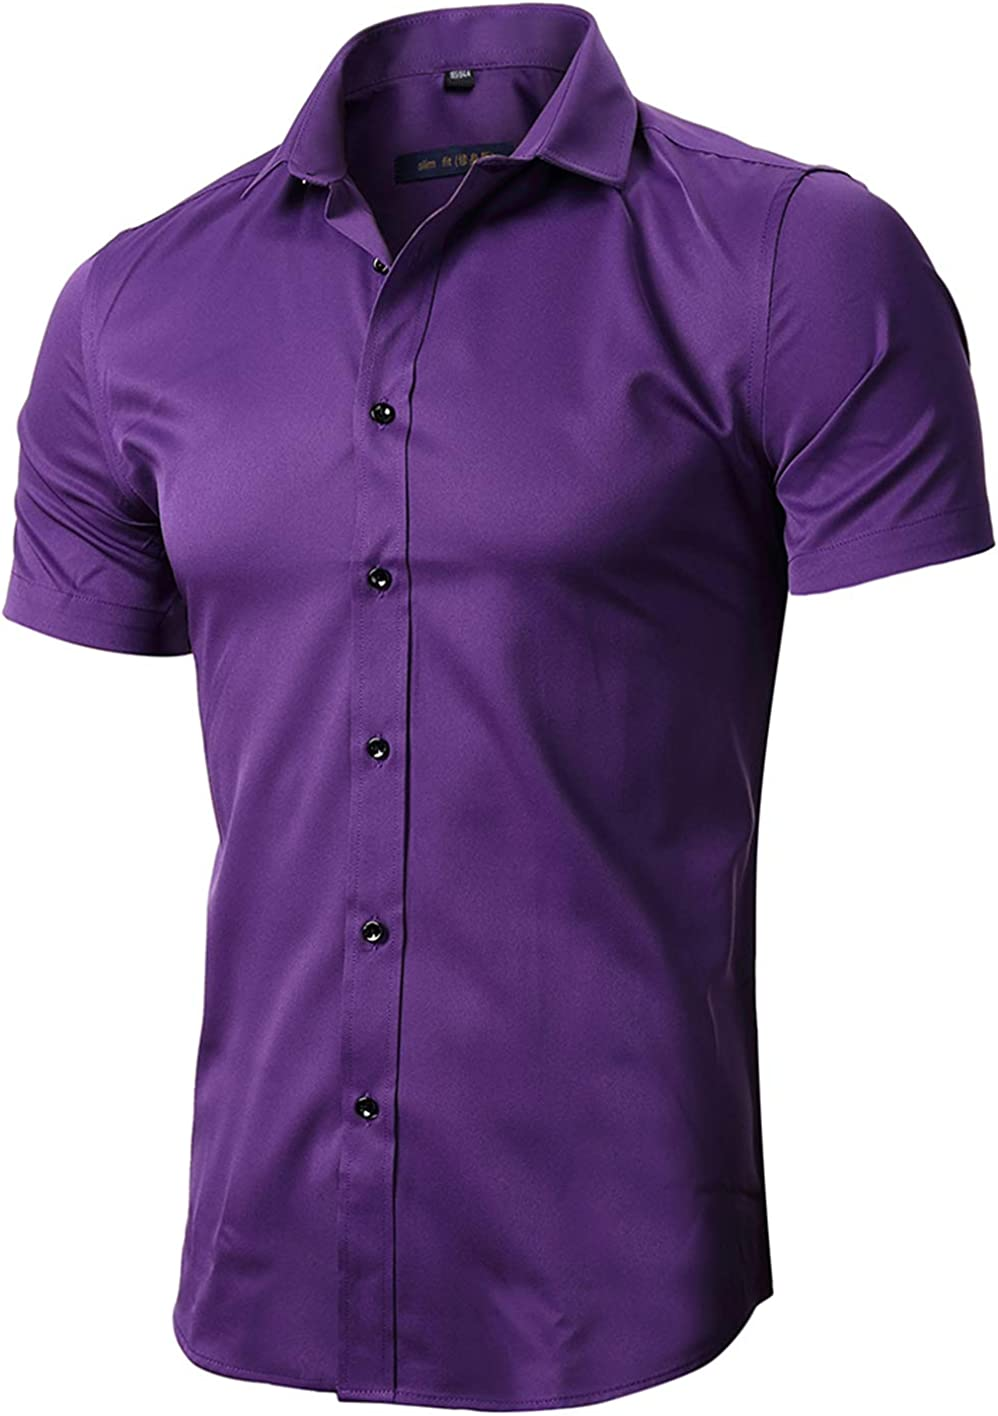 FLY HAWK Mens Dress Shirts Fitted Bamboo Fiber Short Sleeve Elastic Casual Button Down Shirts